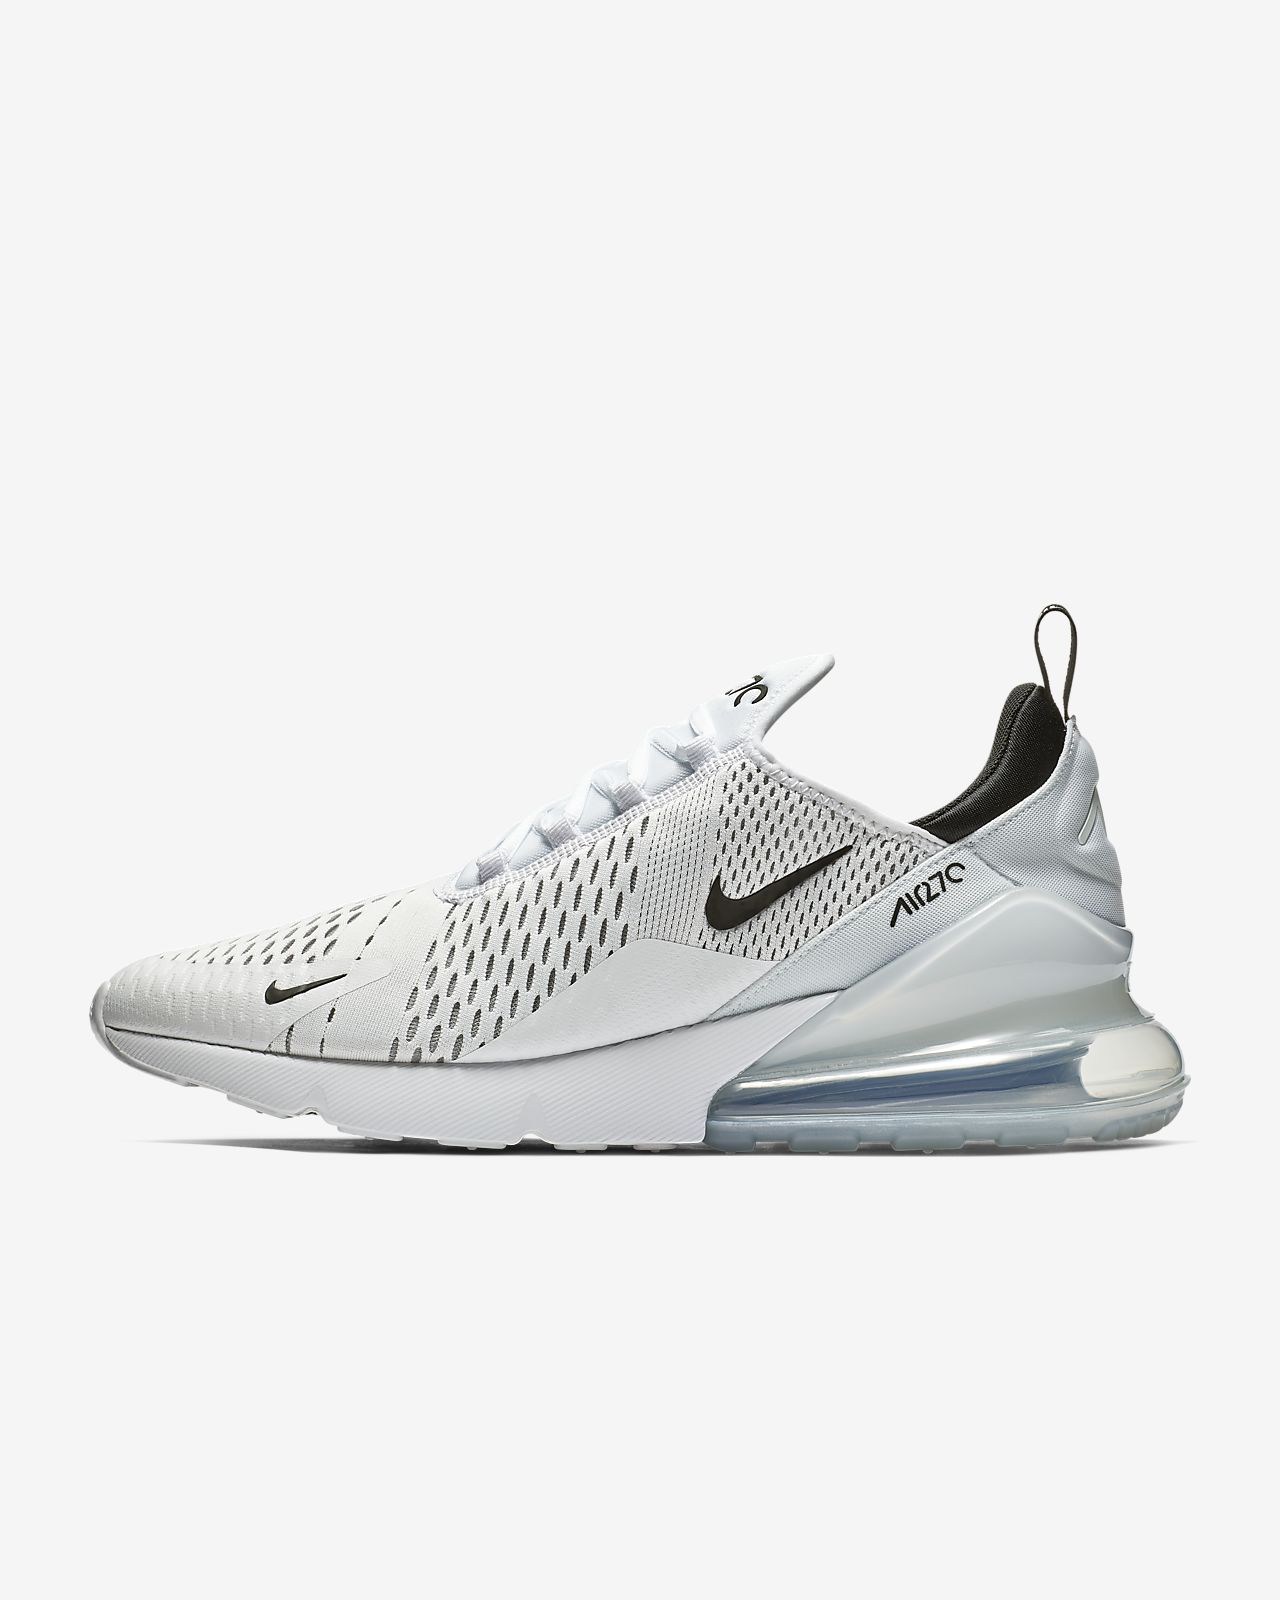 cheaper 4576d 25fb8 Nike Air Max 270